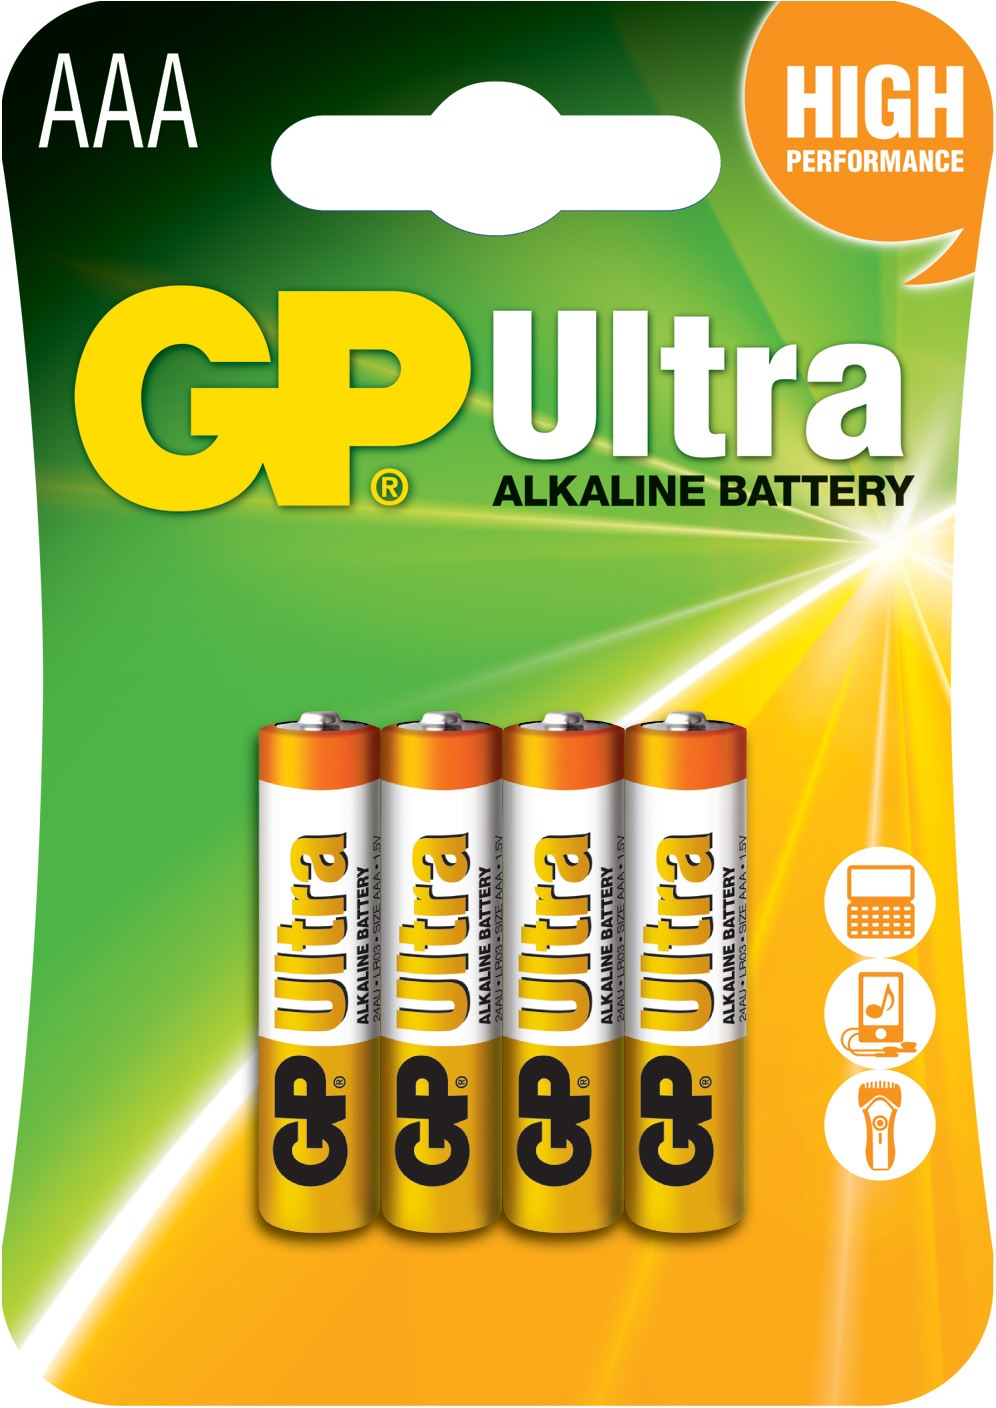 Gp Ultra Alkaline Battery Aaa Gp3a4b (carton of 10 Packs)